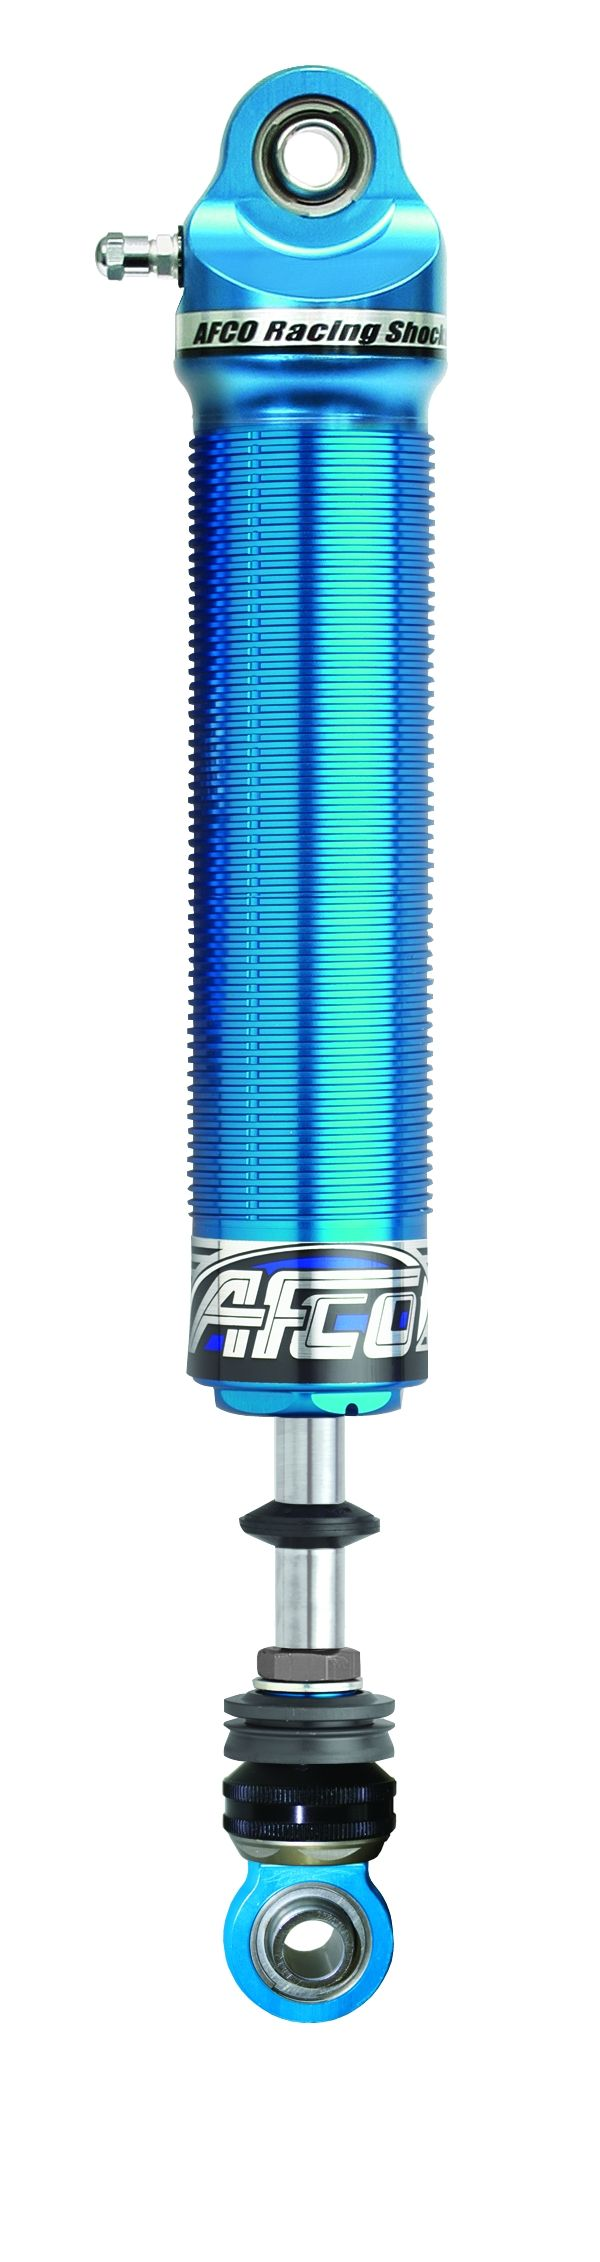 Aluminum Shock Monotube 26 Series Threaded Adj. Shock 7 In., Comp 3/Reb 5-10